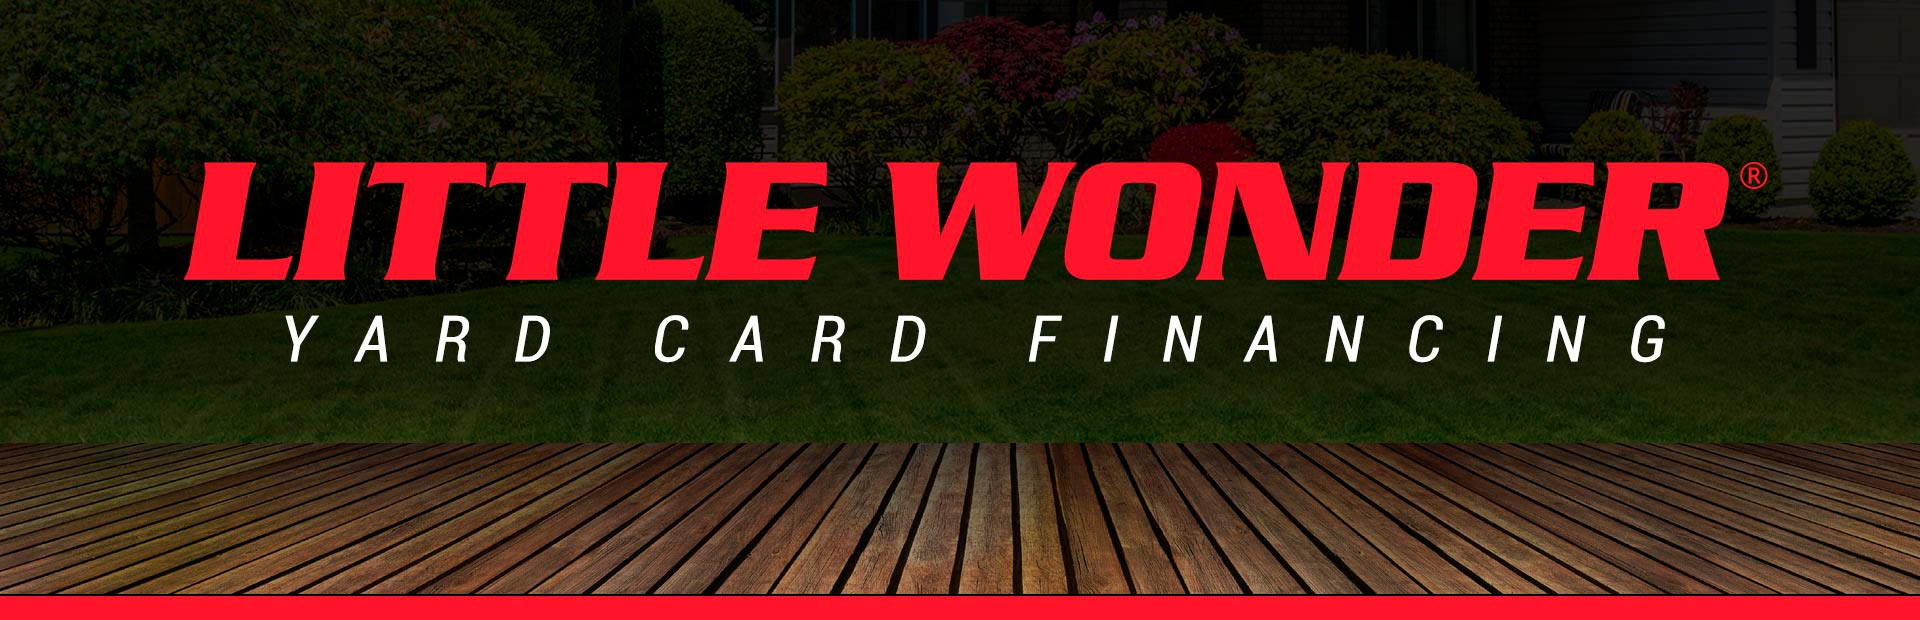 Little Wonder: Little Wonder - Yard Card Financing Programs